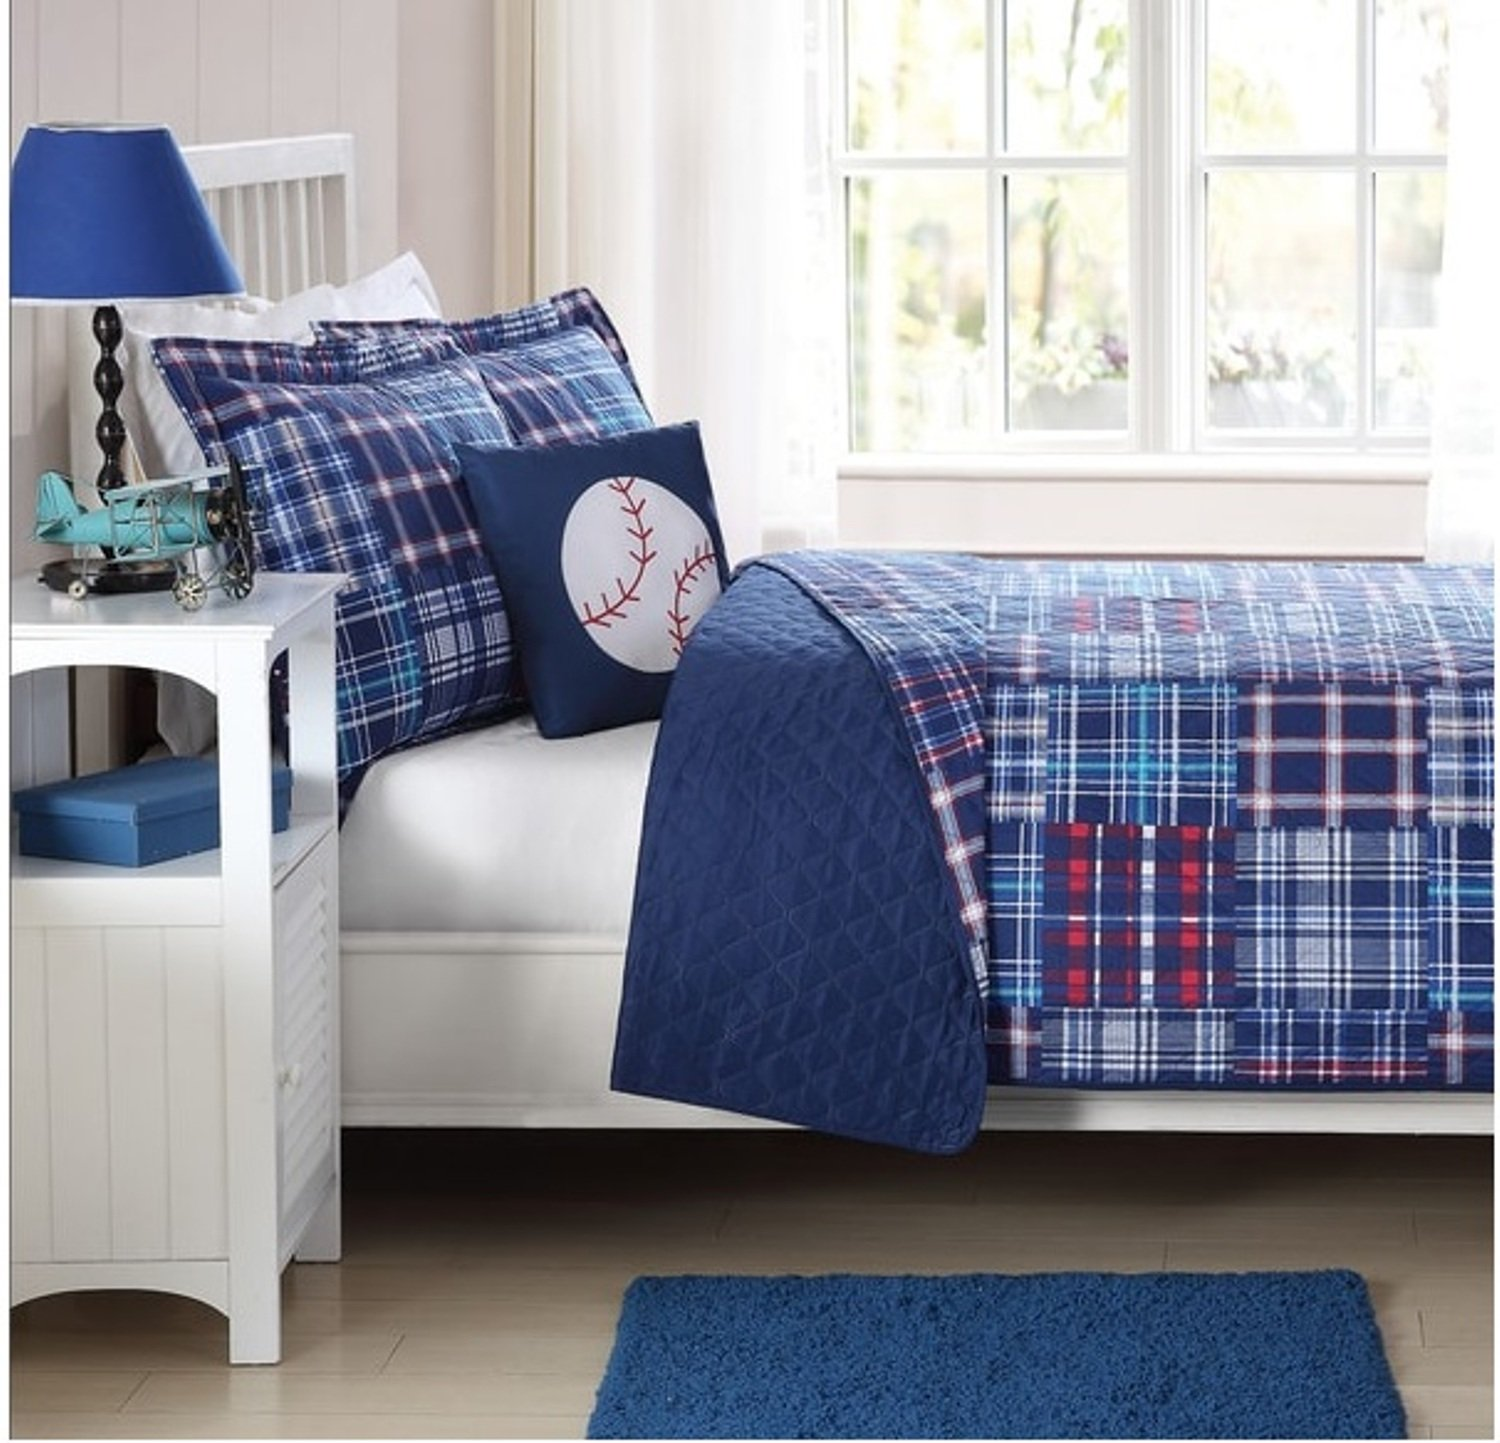 4 Piece Plaid Patchwork Printed Pattern Quilt Set Full Size, Featuring Baseball Game Sports Inspired Design Comfortable Bedding, Classic Stylish Playful Boys Kids Bedroom Decoration, Blue, Red, Multi